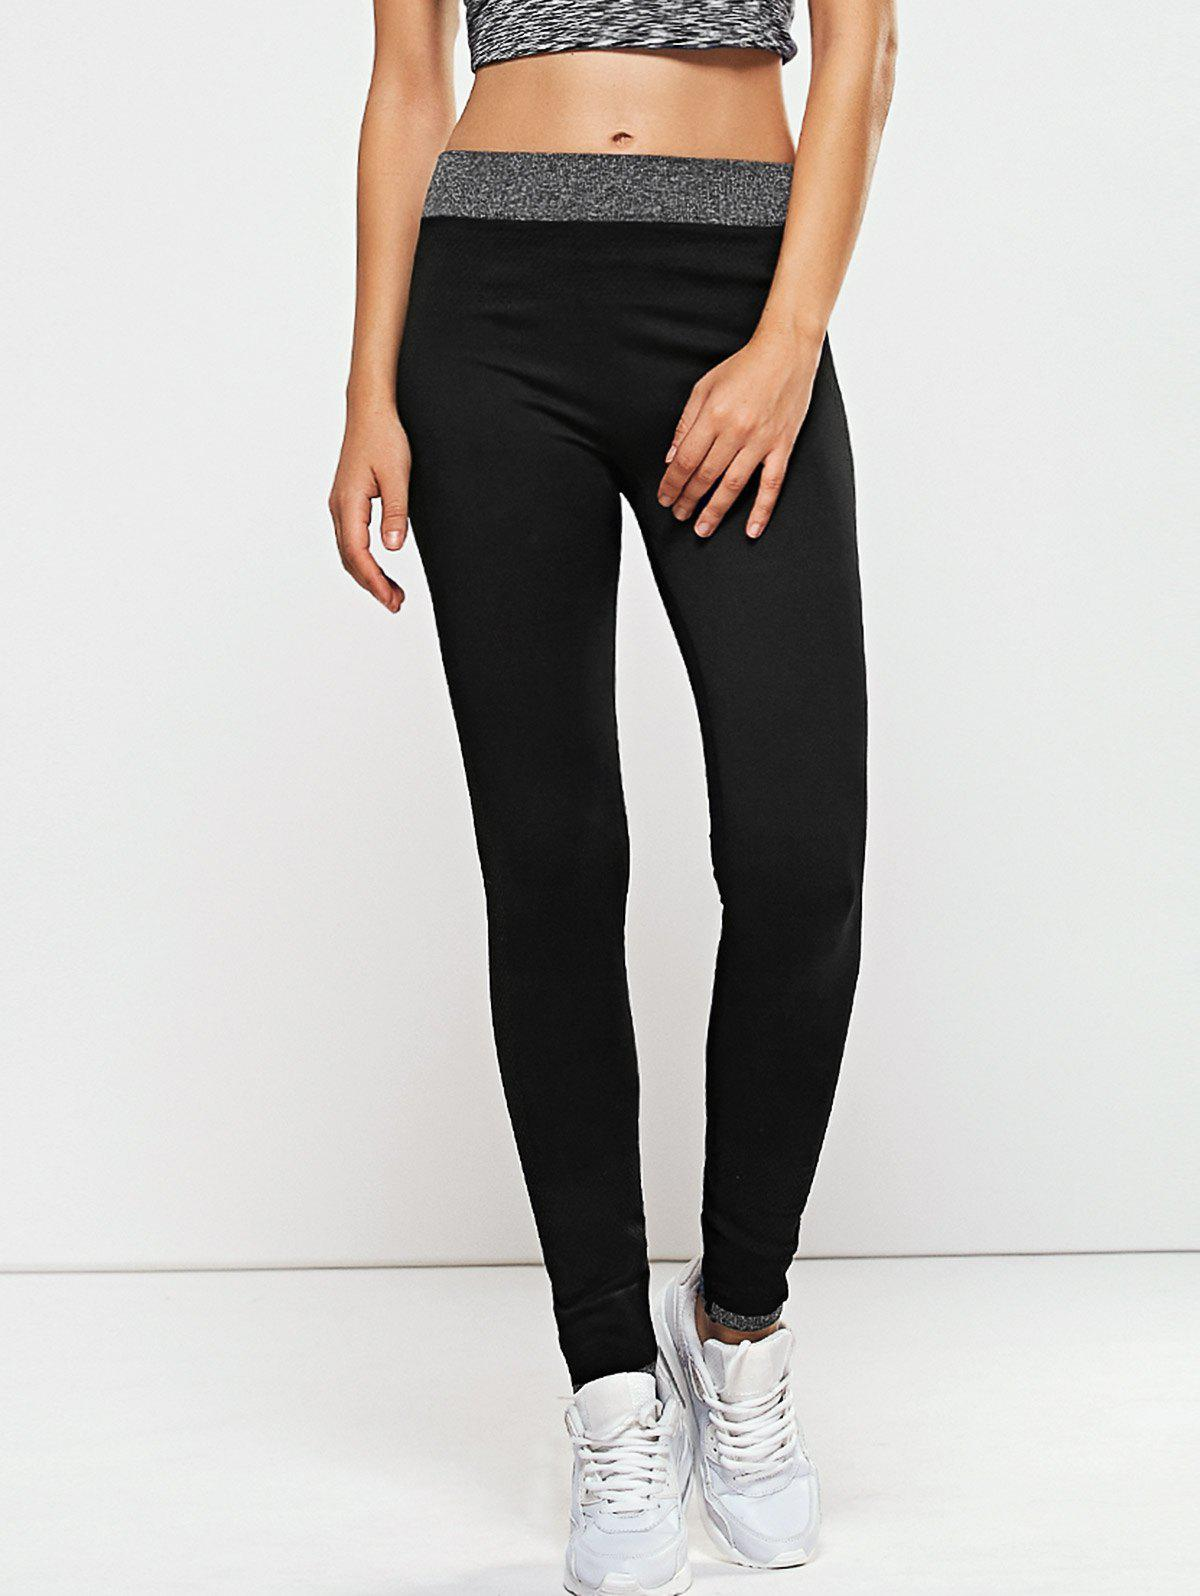 Quick -Dry Yoga Leggings PantsWOMEN<br><br>Size: L; Color: BLACK; Style: Active; Length: Ninth; Material: Cotton Blends,Polyester; Fit Type: Skinny; Waist Type: High; Closure Type: Elastic Waist; Pattern Type: Patchwork; Pant Style: Pencil Pants; Elasticity: Elastic; Weight: 0.187kg; Package Contents: 1 x Leggings;